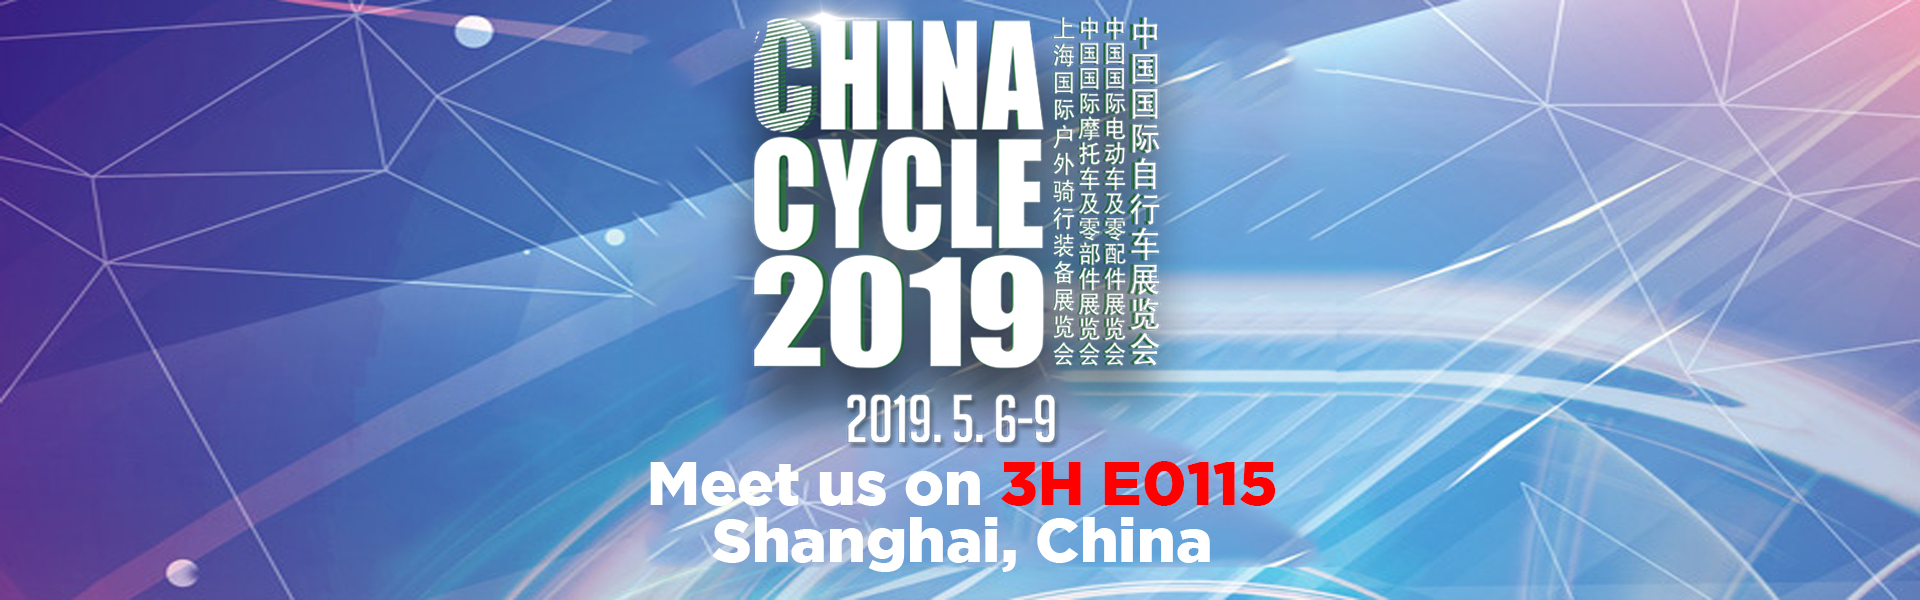 China cycling show